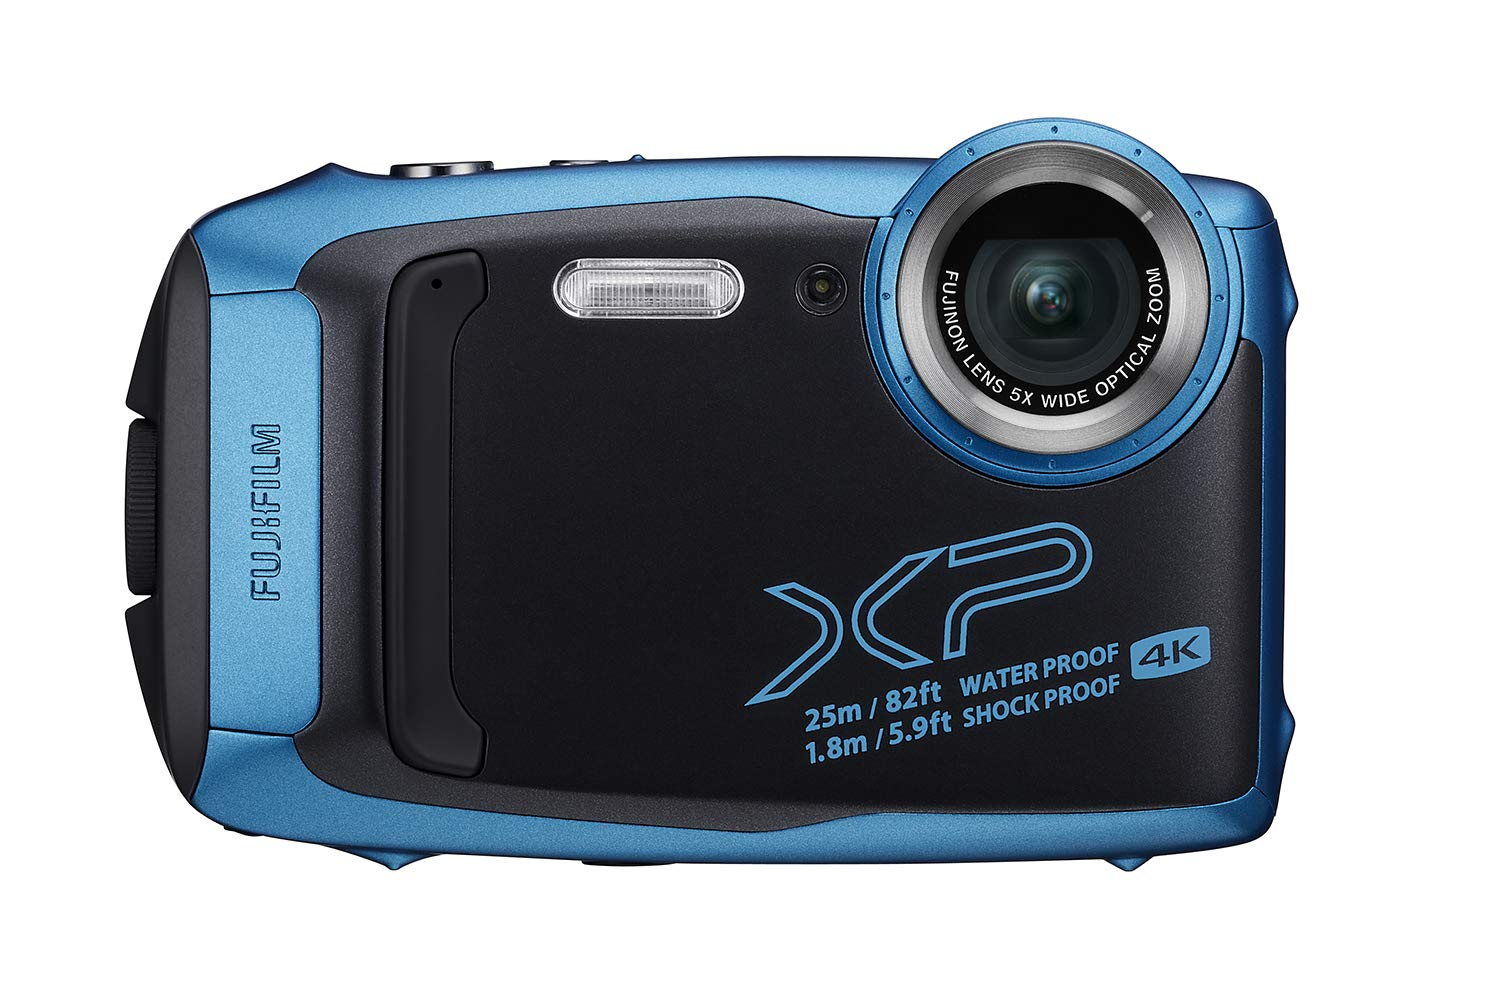 Fujifilm FinePix XP140 Waterproof Digital Camera w/16GB SD Card - Sky Blue by Fujifilm